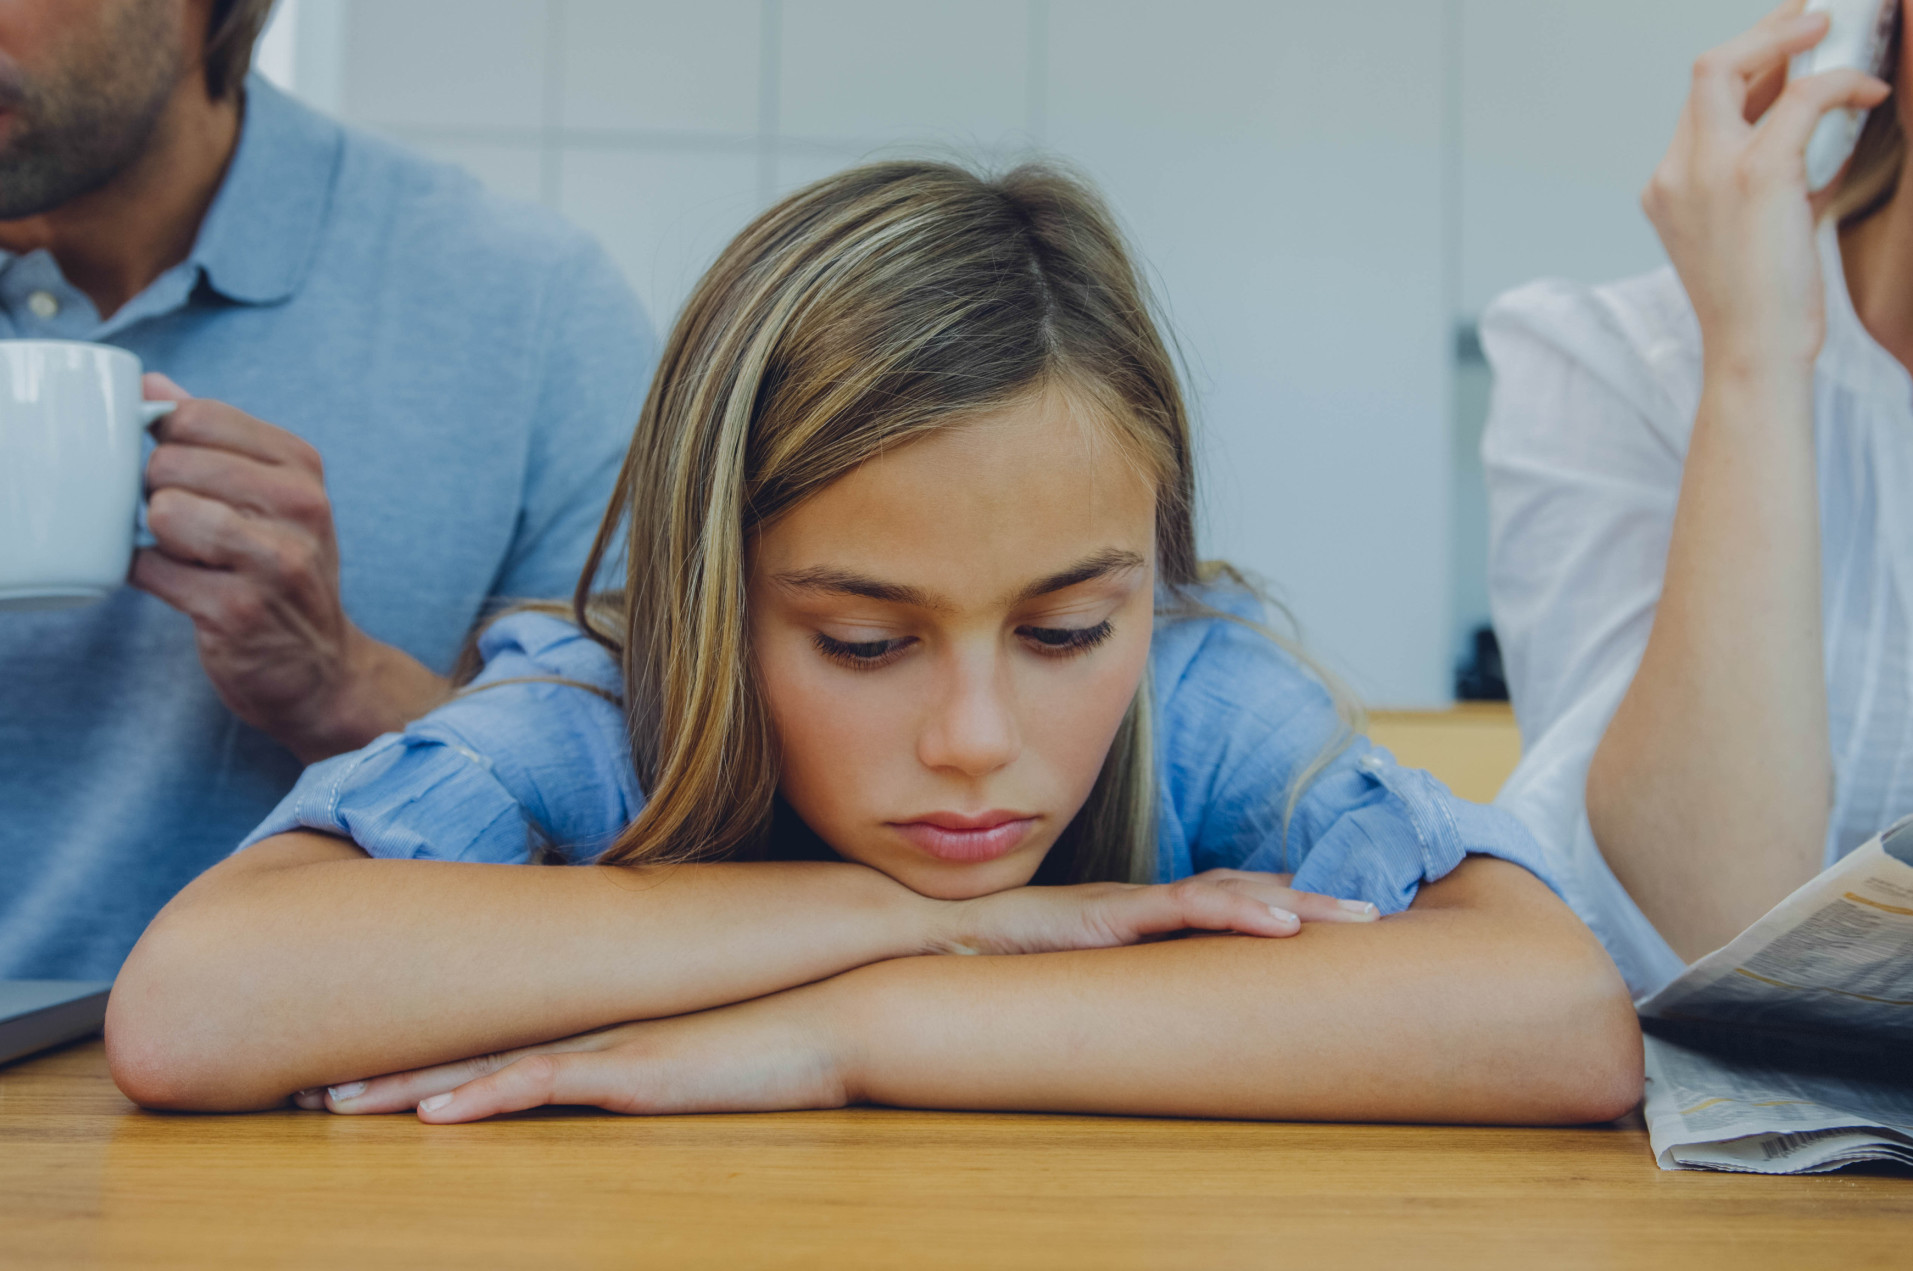 10 Ways to Deal with Toxic Parents - Psych2Go